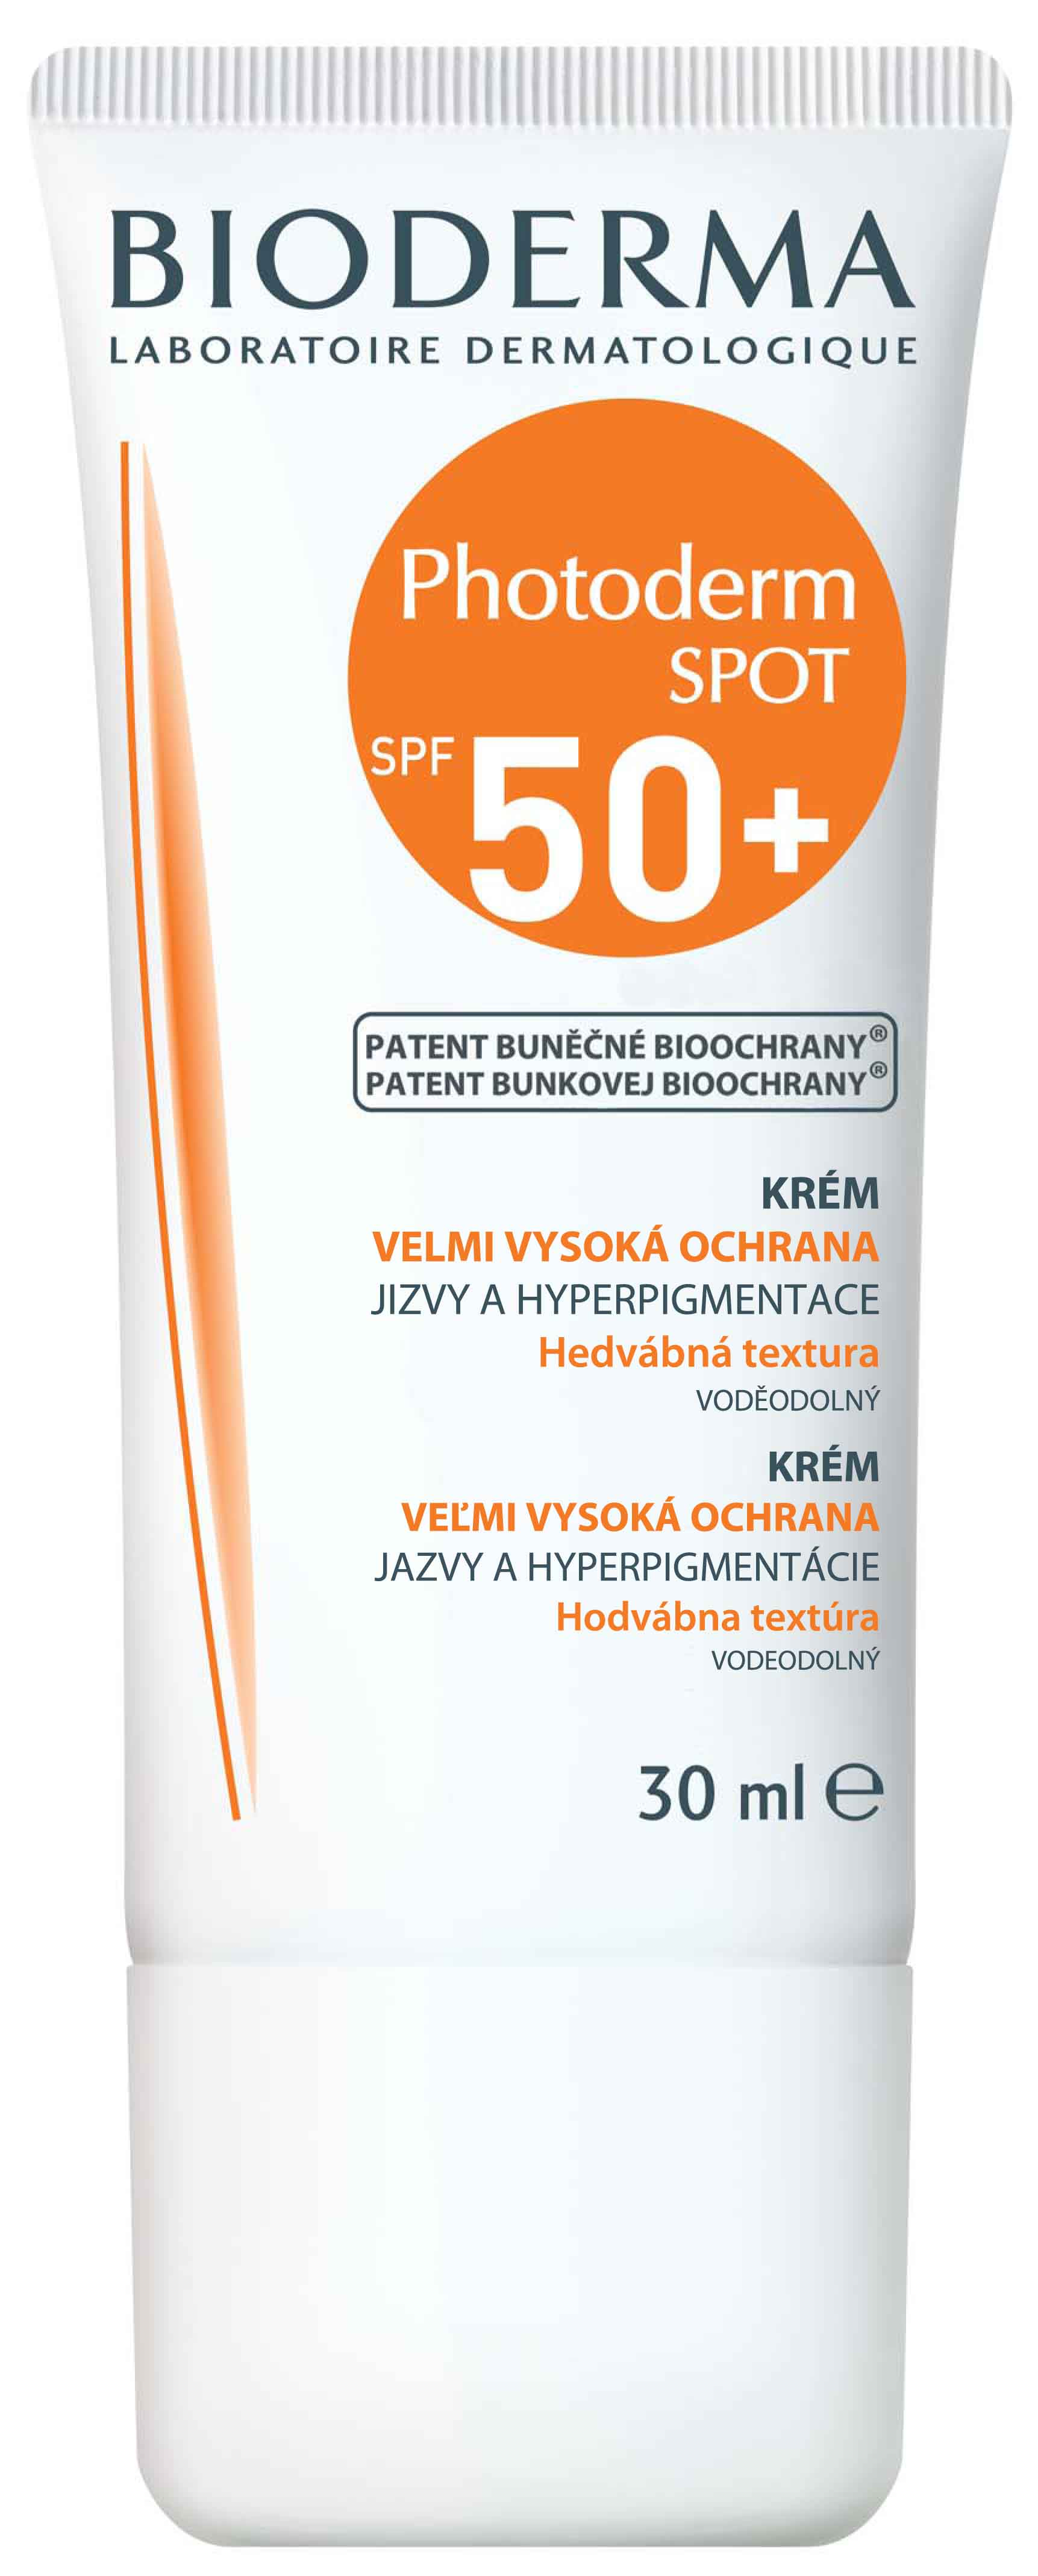 BIODERMA Photoderm Spot SPF 50 plus krém 30 ml